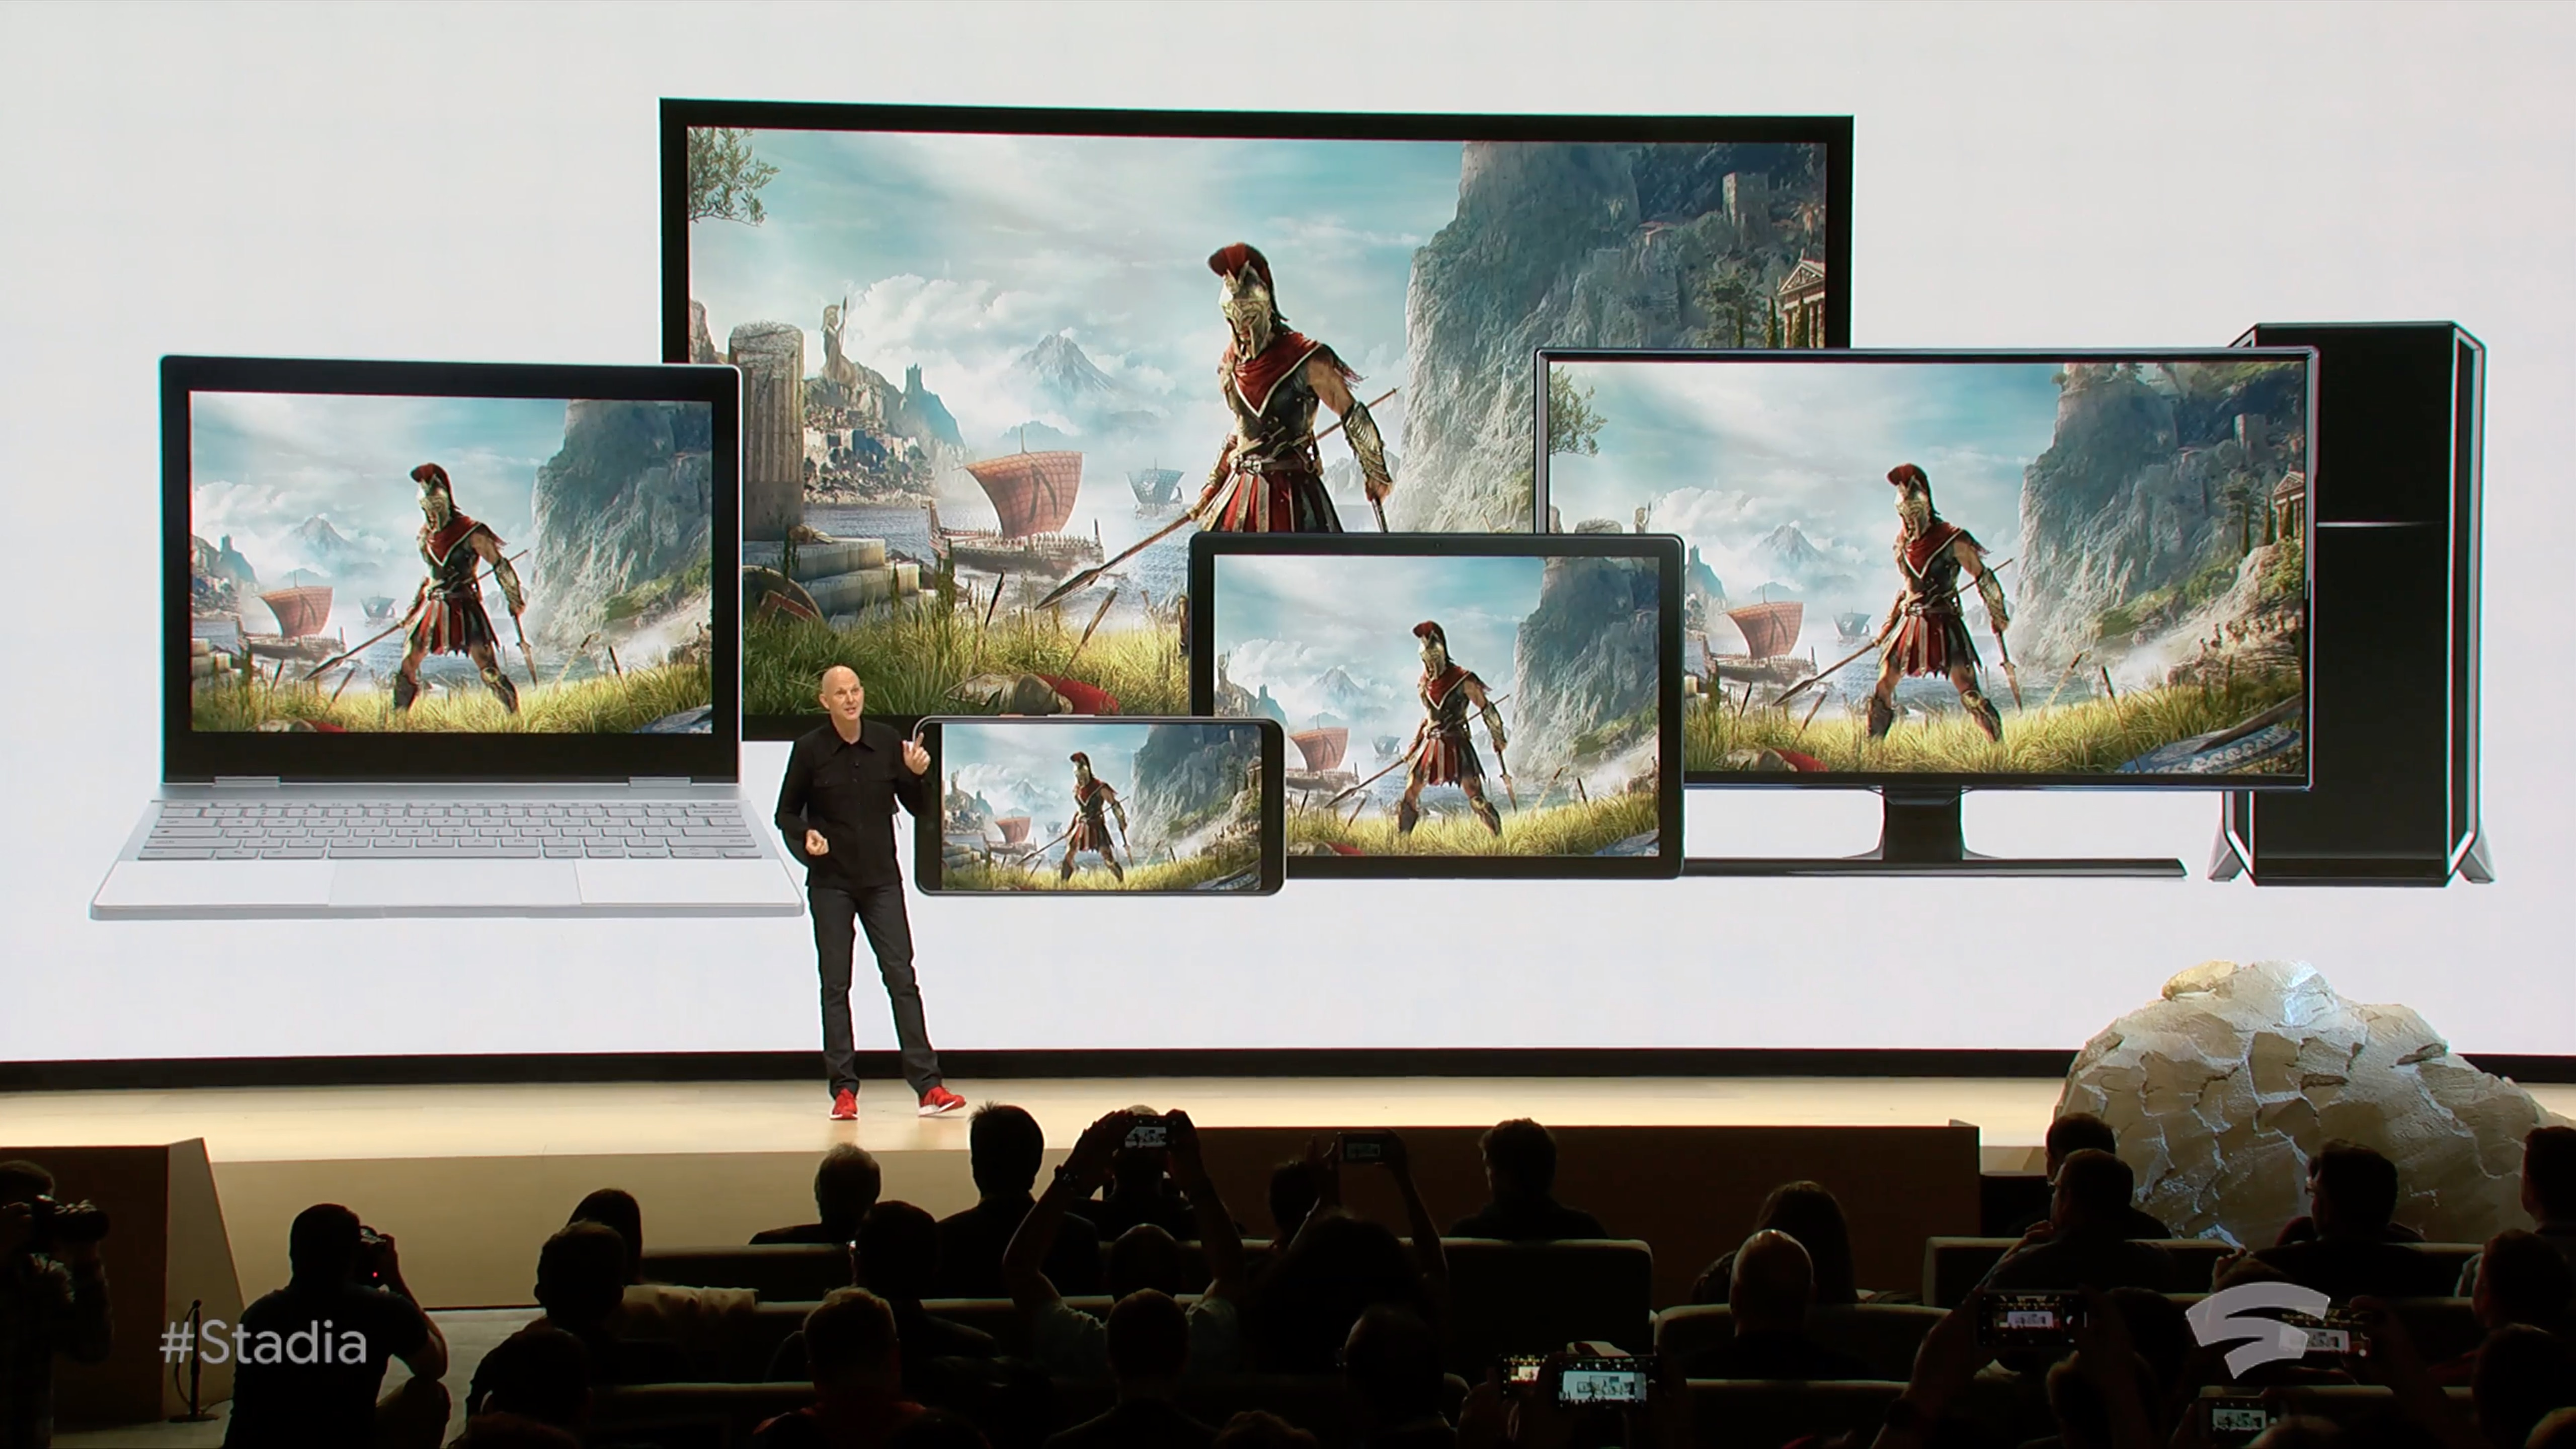 Where was Google Stadia at E3 2019?